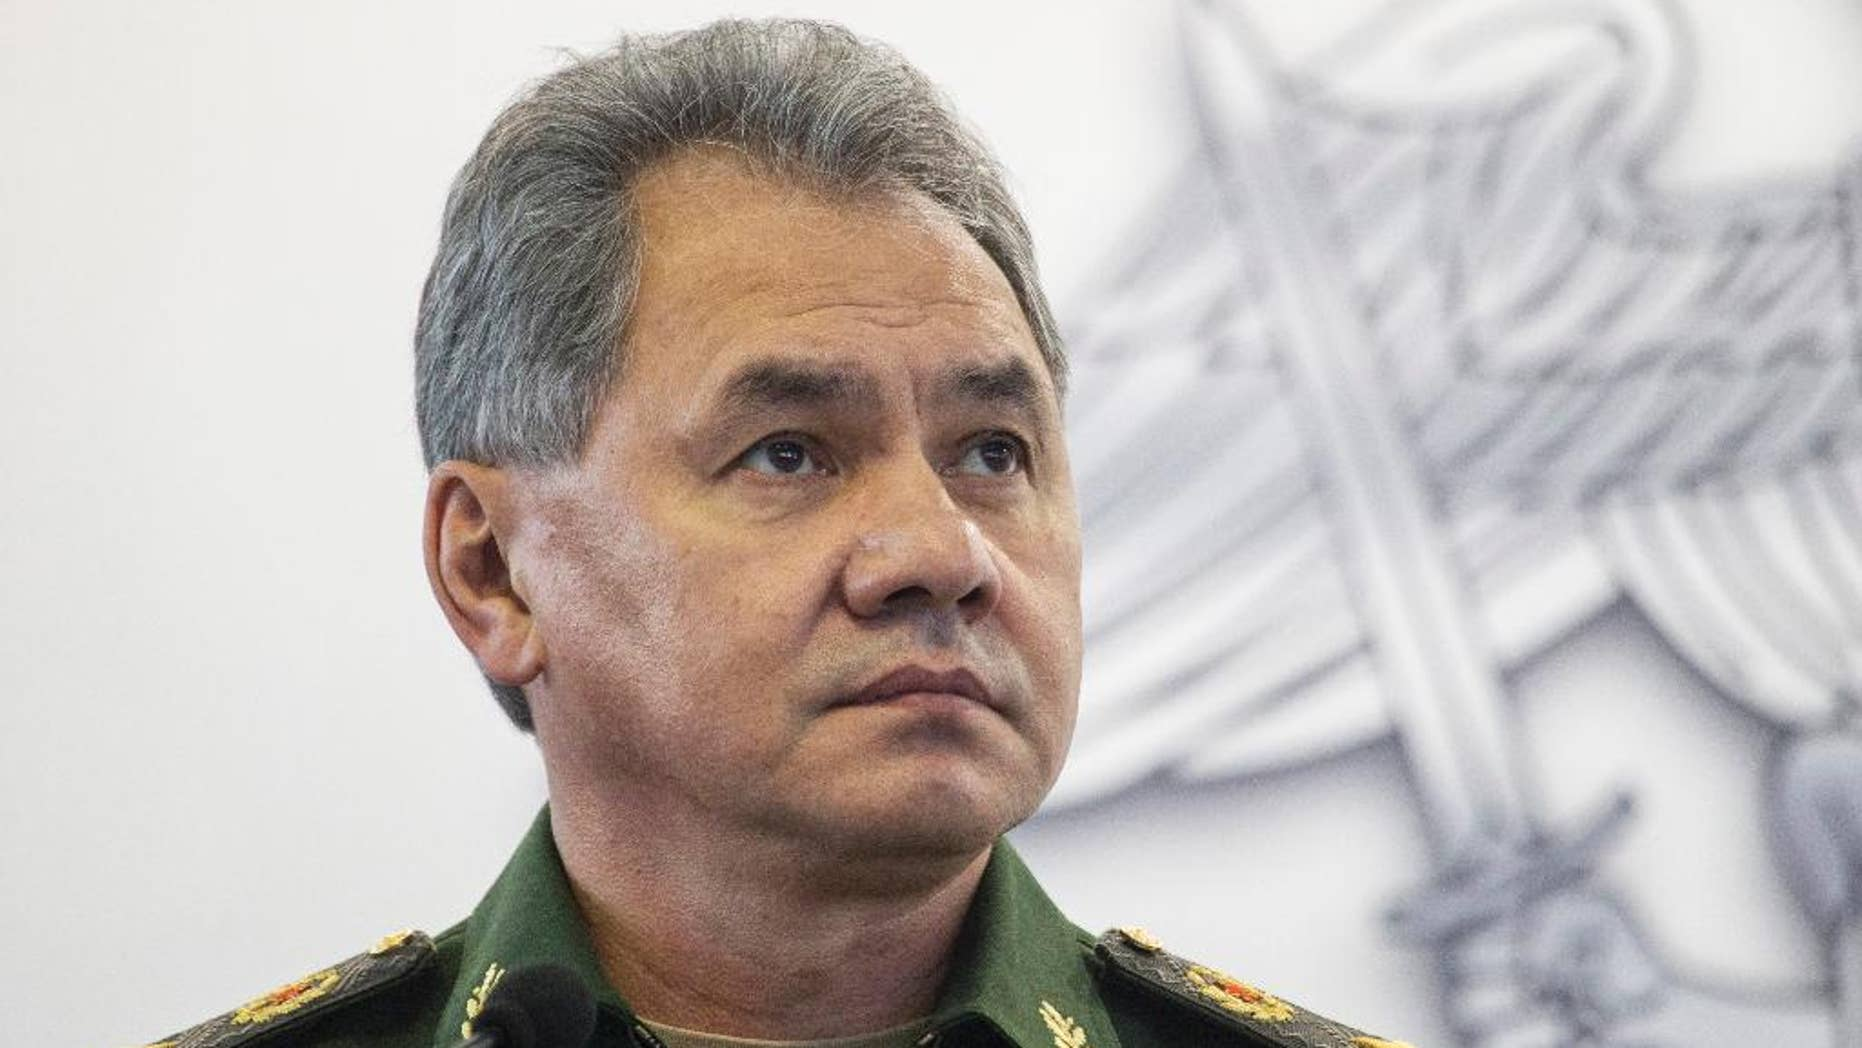 FILE  In this file photo taken on Monday, Oct.  5, 2015, Russian Defence Minister Sergei Shoigu attends an opening ceremony during an Innovation exhibition of the Russian Defense Ministry in Kubinka outside Moscow, Russia. Shoigu said Friday, March 25, 2016 that NATO's moves to build up its military forces near Russia's borders has caused Moscow's concern and required a response. (AP Photo/Pavel Golovkin, File)